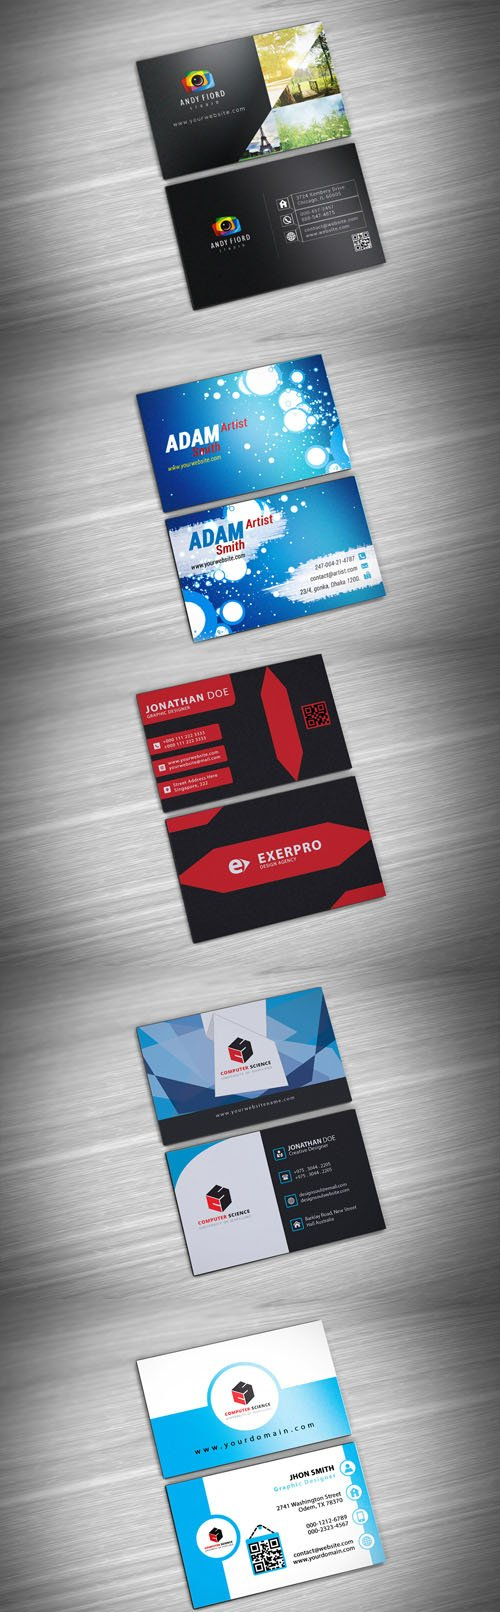 Business Card PSD Bundle - 5 Cards